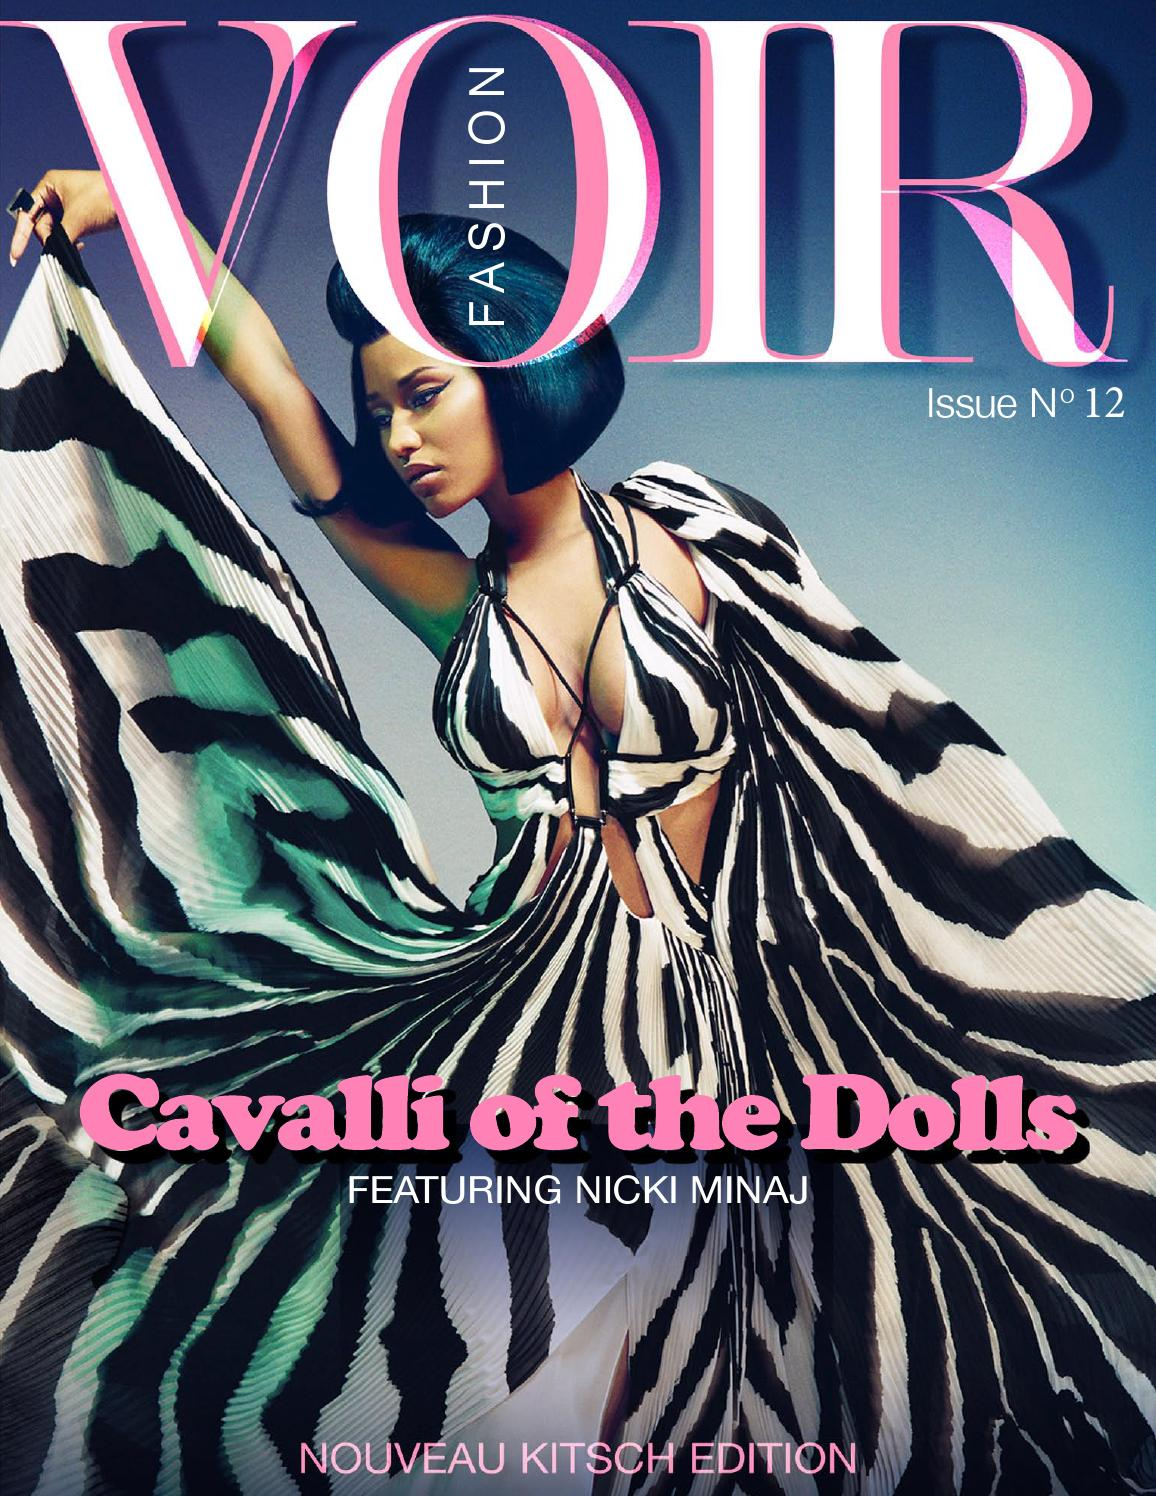 Voir Fashion Issue 12 Cavalli Of The Dolls Feat Nicki